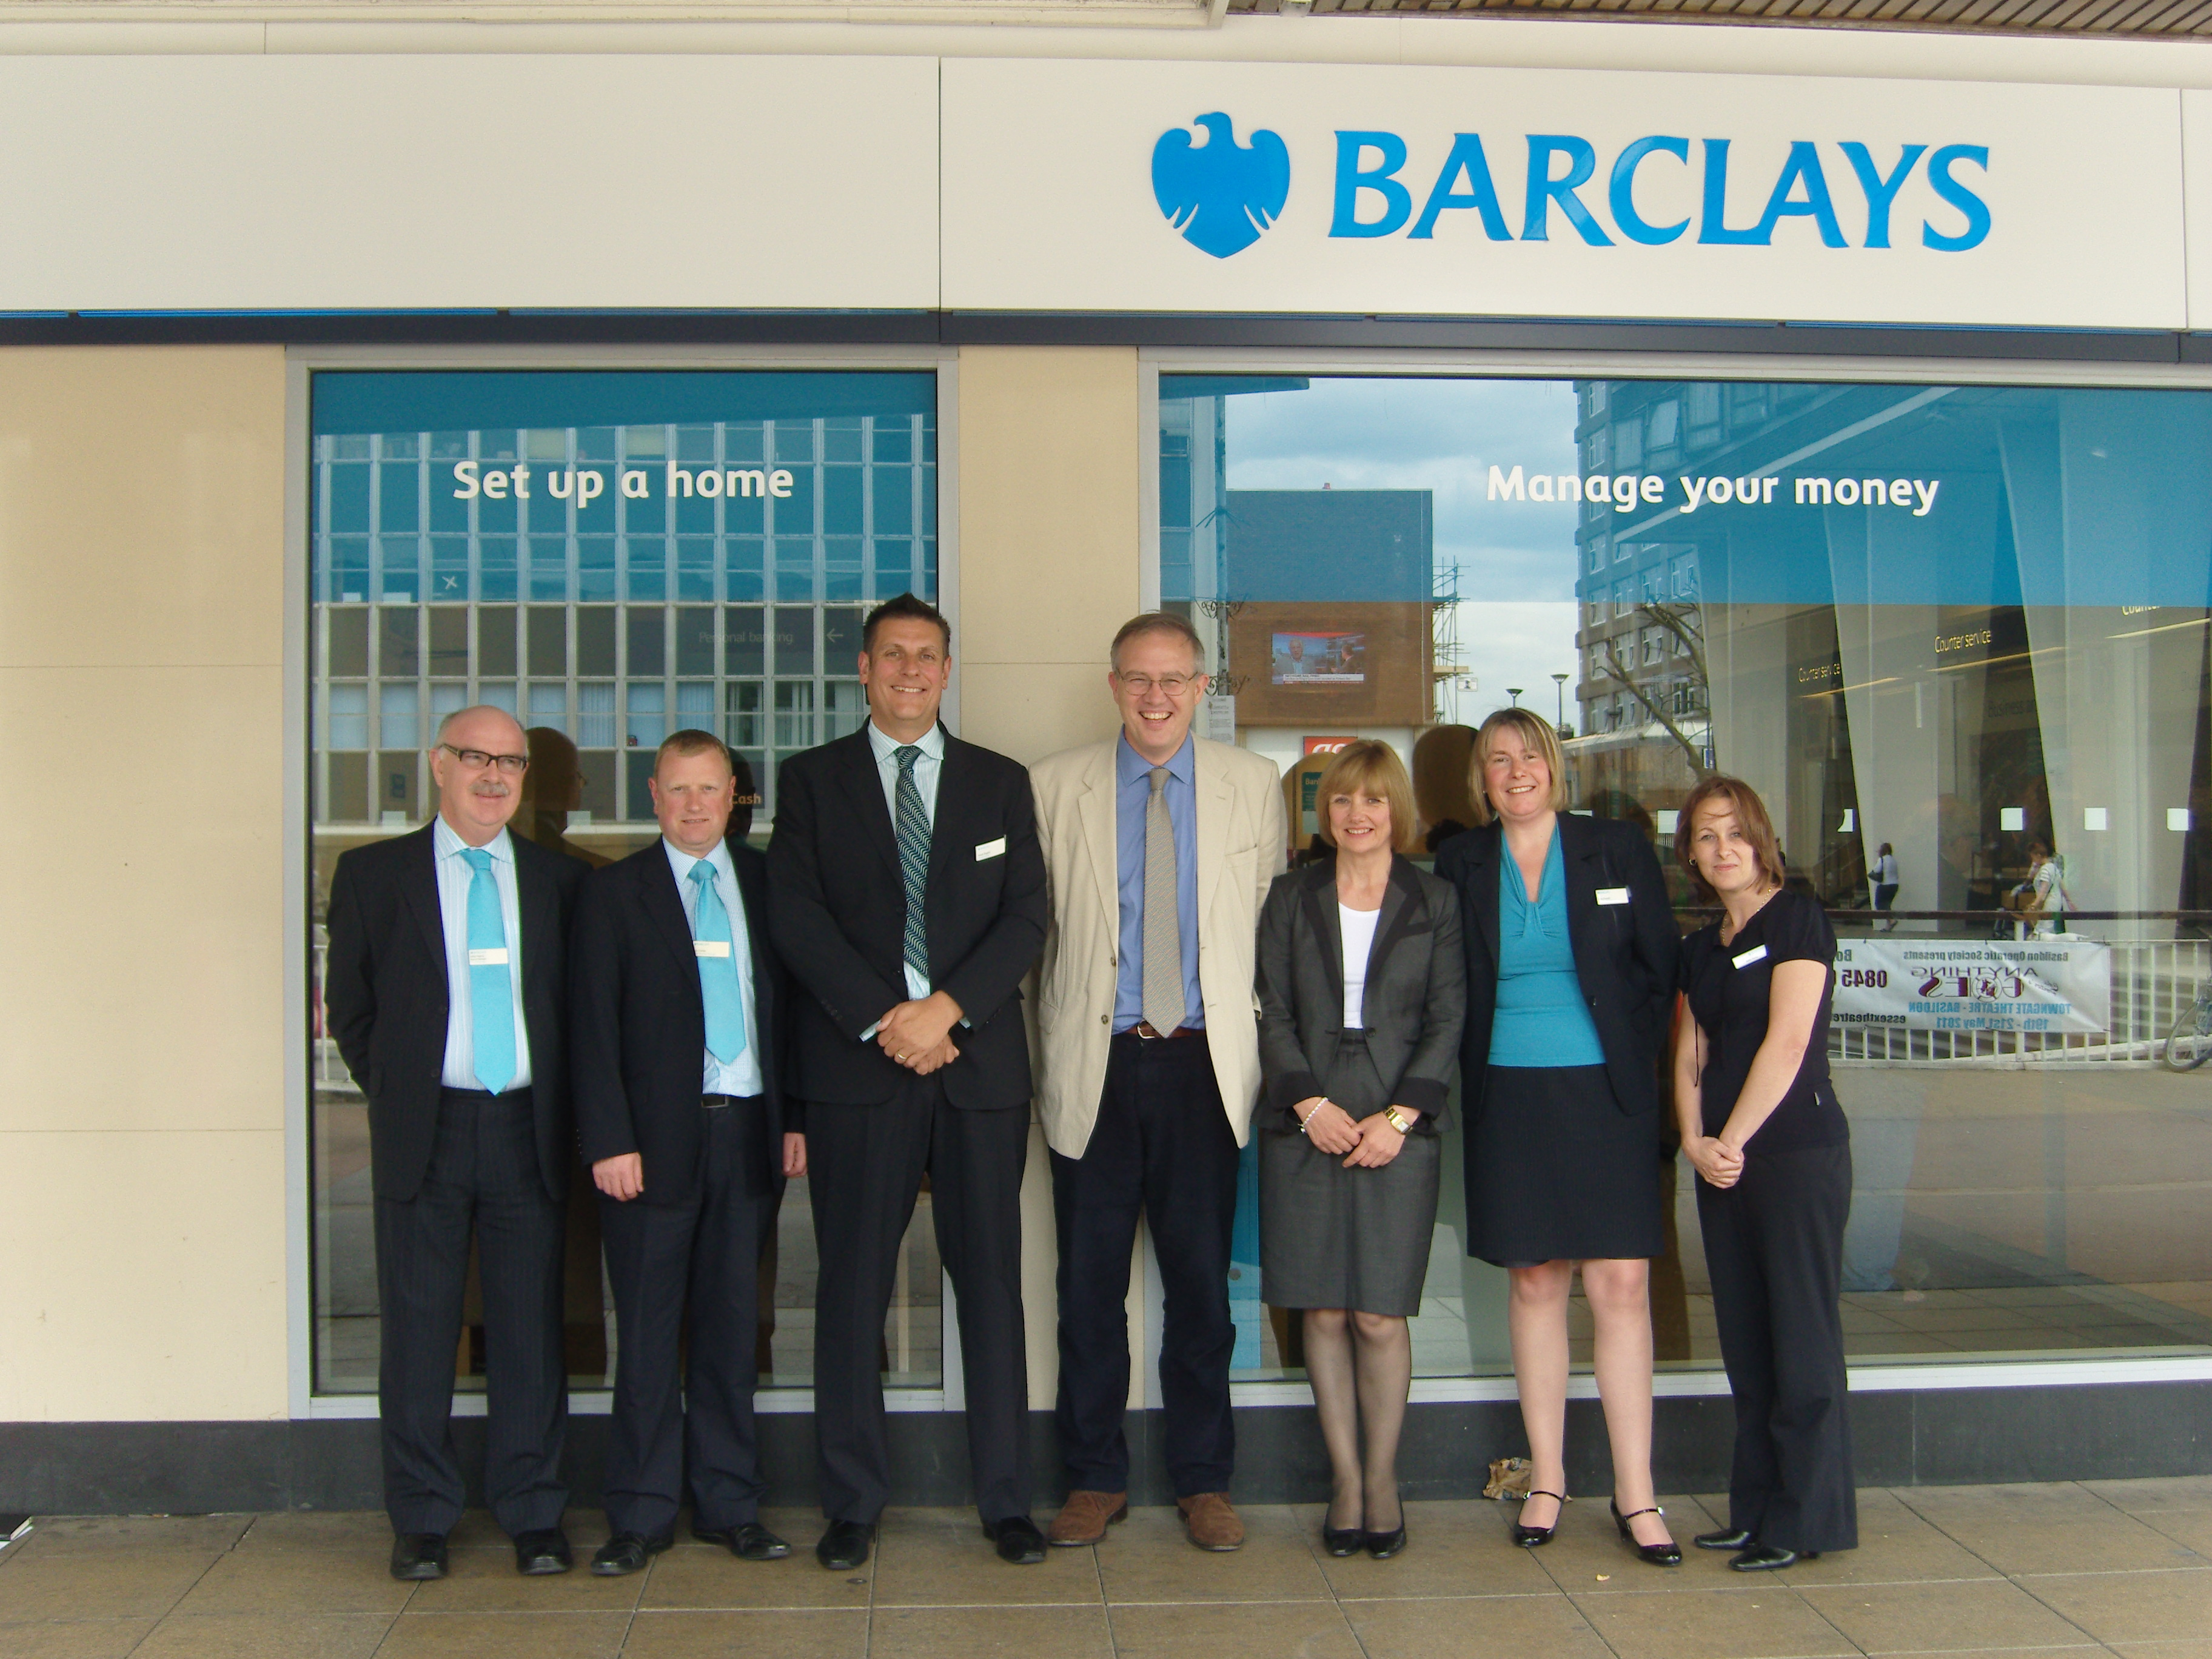 barclays bank business law and ethics The guardian - back to home business economics banking more barclays business live barclays boss admits errors over whistleblower and says 'i got too.